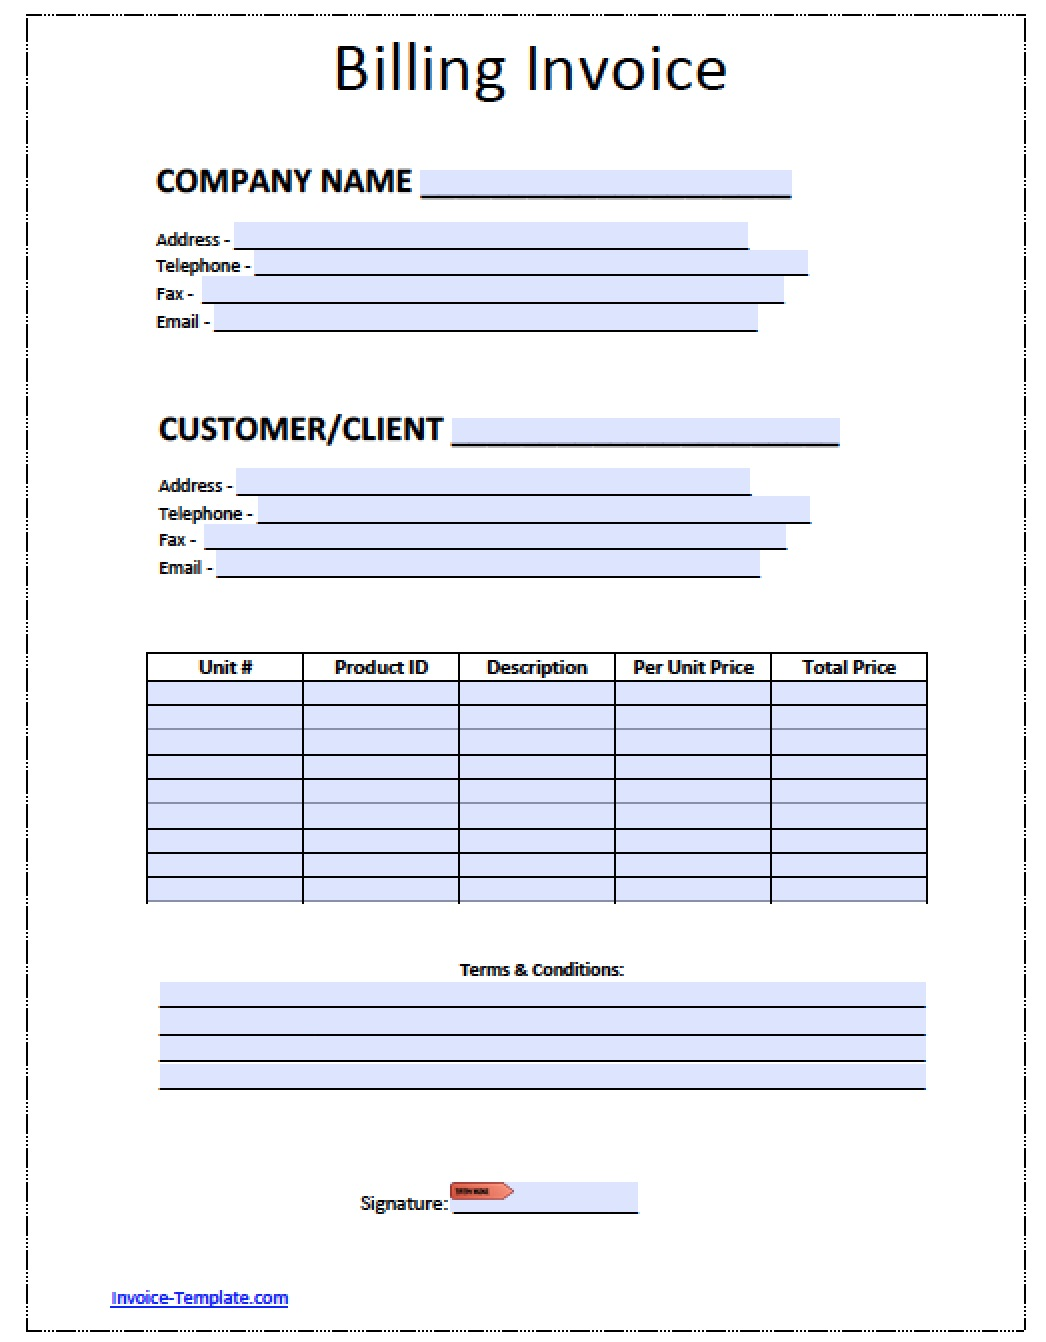 Centralasianshepherdus  Winning Billing Invoice Invoices Faq U Cloudflare Support Billing  With Exquisite Free Billing Invoice Template  Excel  Pdf  Word Doc  Billing With Delightful Example Of Cash Receipts Journal Also Medicare Receipts In Addition Please Acknowledge Receipt Of Payment And Taxi Receipts Template As Well As Lic Online Premium Receipt Additionally Cash Receipt Template Doc From Happytomco With Centralasianshepherdus  Exquisite Billing Invoice Invoices Faq U Cloudflare Support Billing  With Delightful Free Billing Invoice Template  Excel  Pdf  Word Doc  Billing And Winning Example Of Cash Receipts Journal Also Medicare Receipts In Addition Please Acknowledge Receipt Of Payment From Happytomco